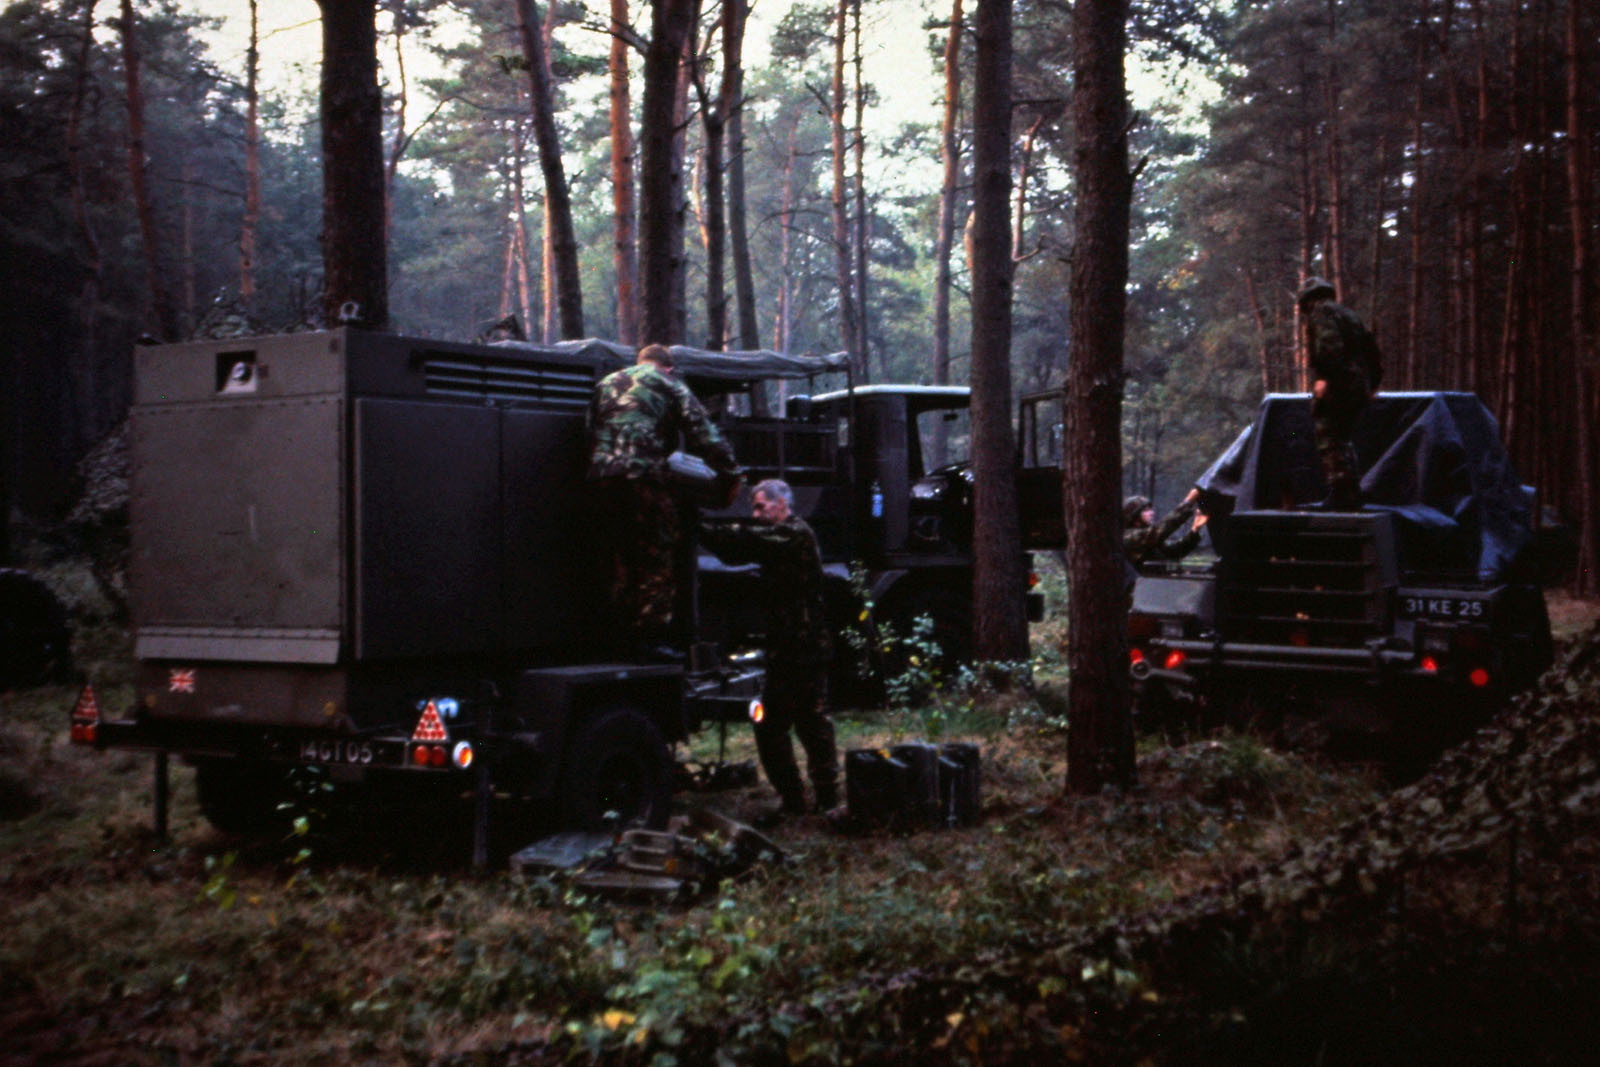 On exercise in Germany